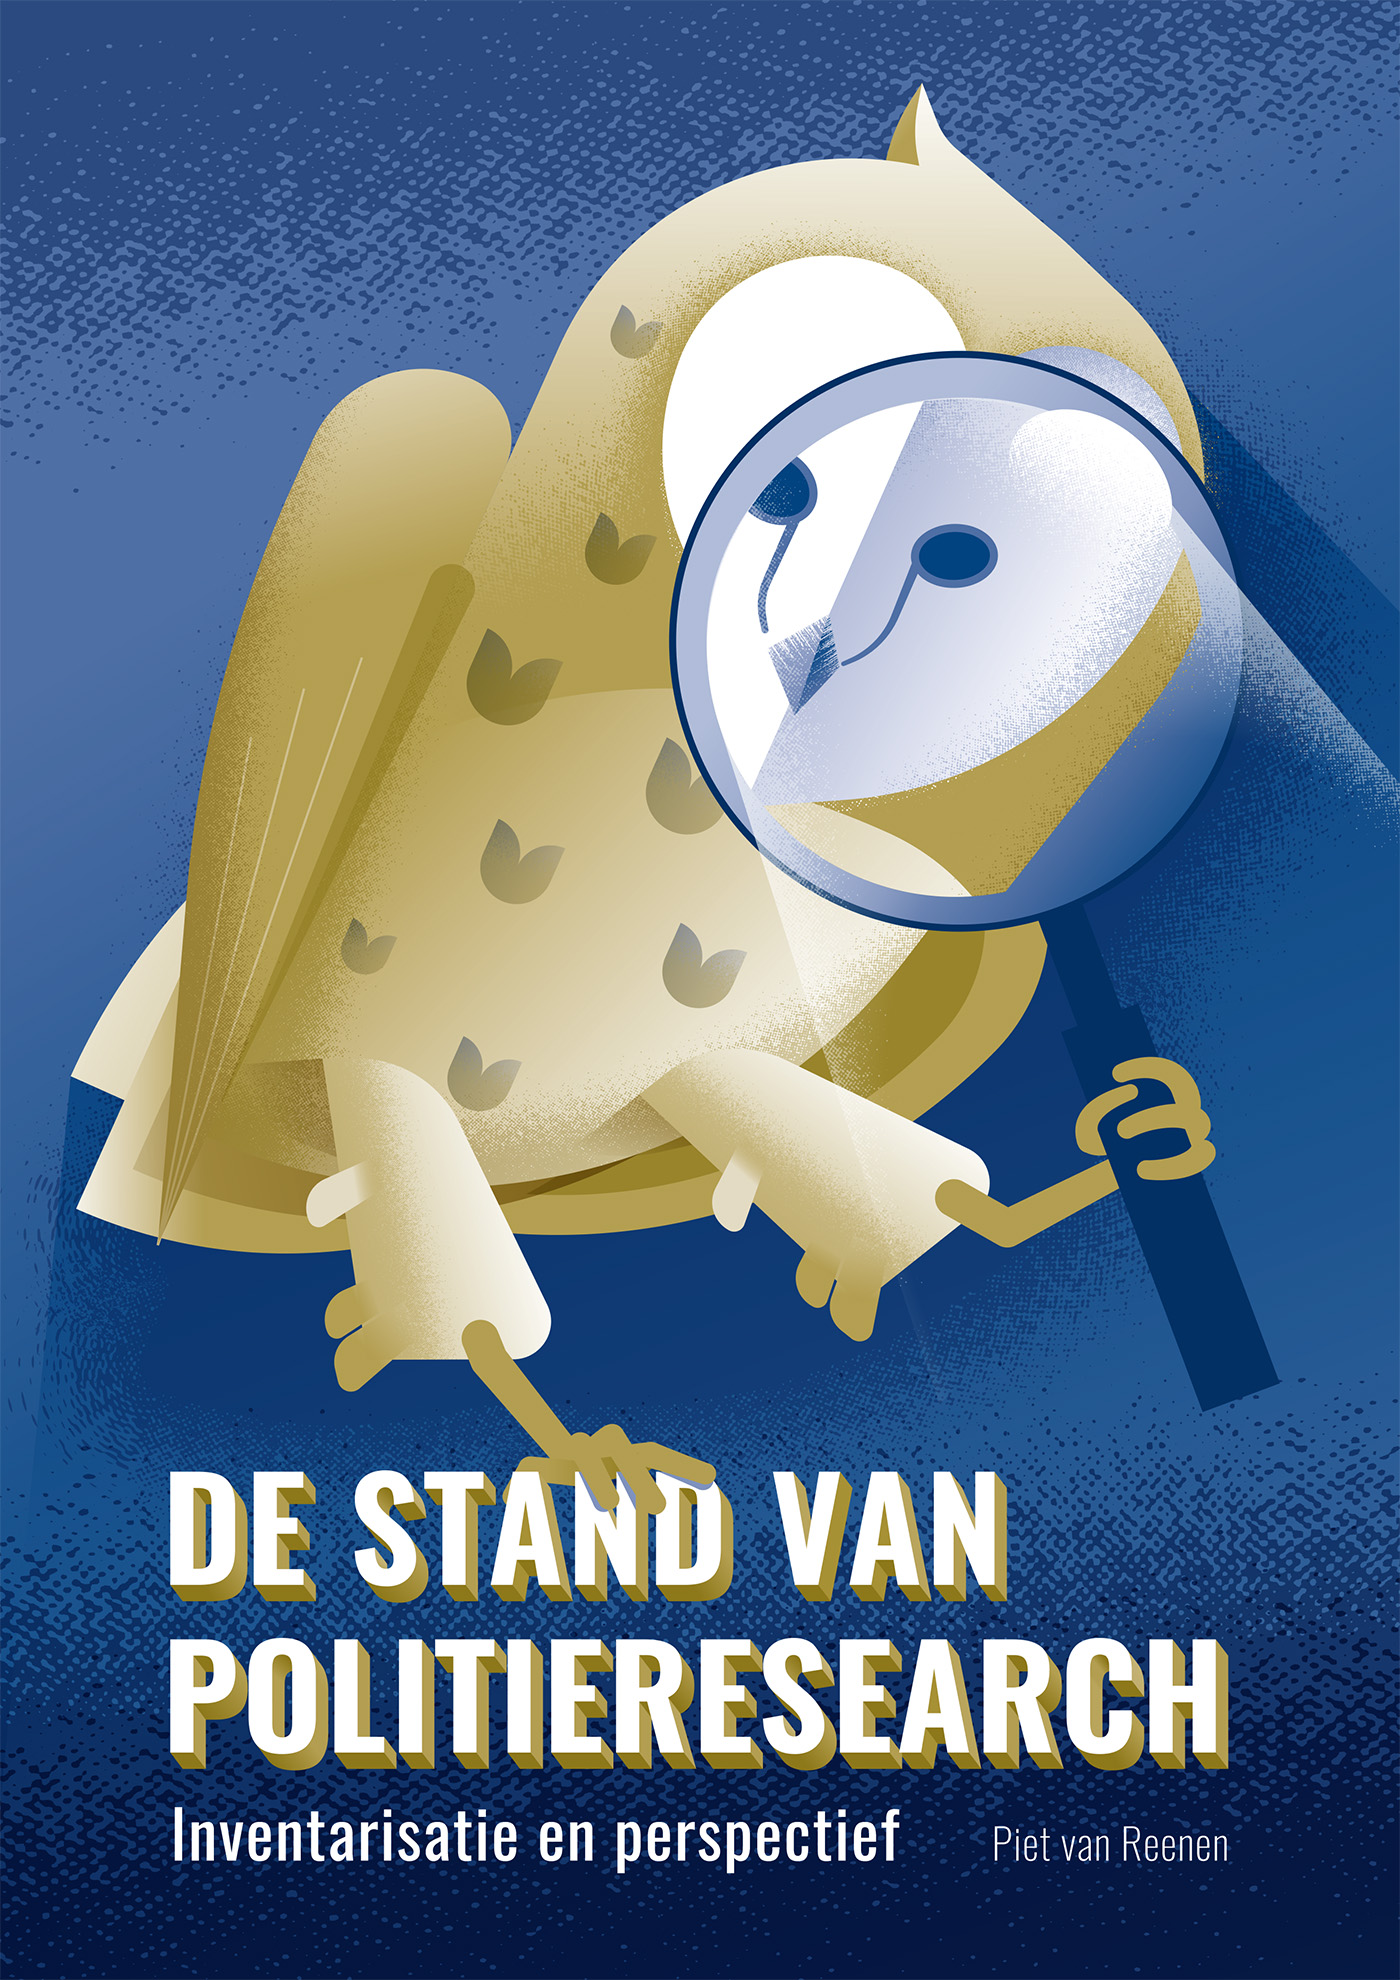 De Stand van Politieresearch